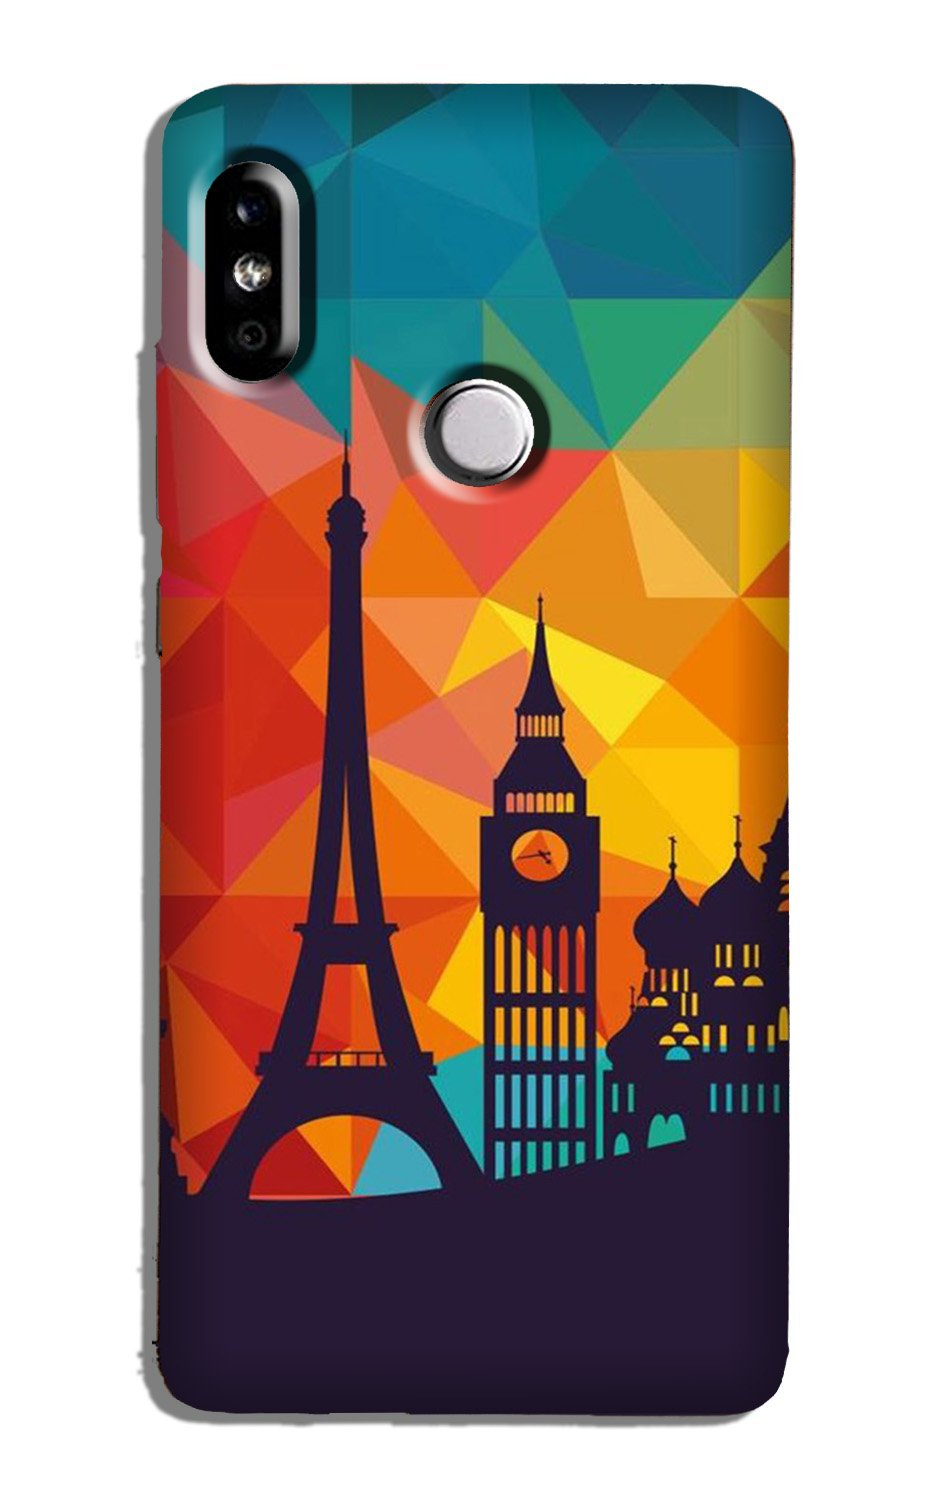 Eiffel Tower Case for Redmi Note 5 Pro